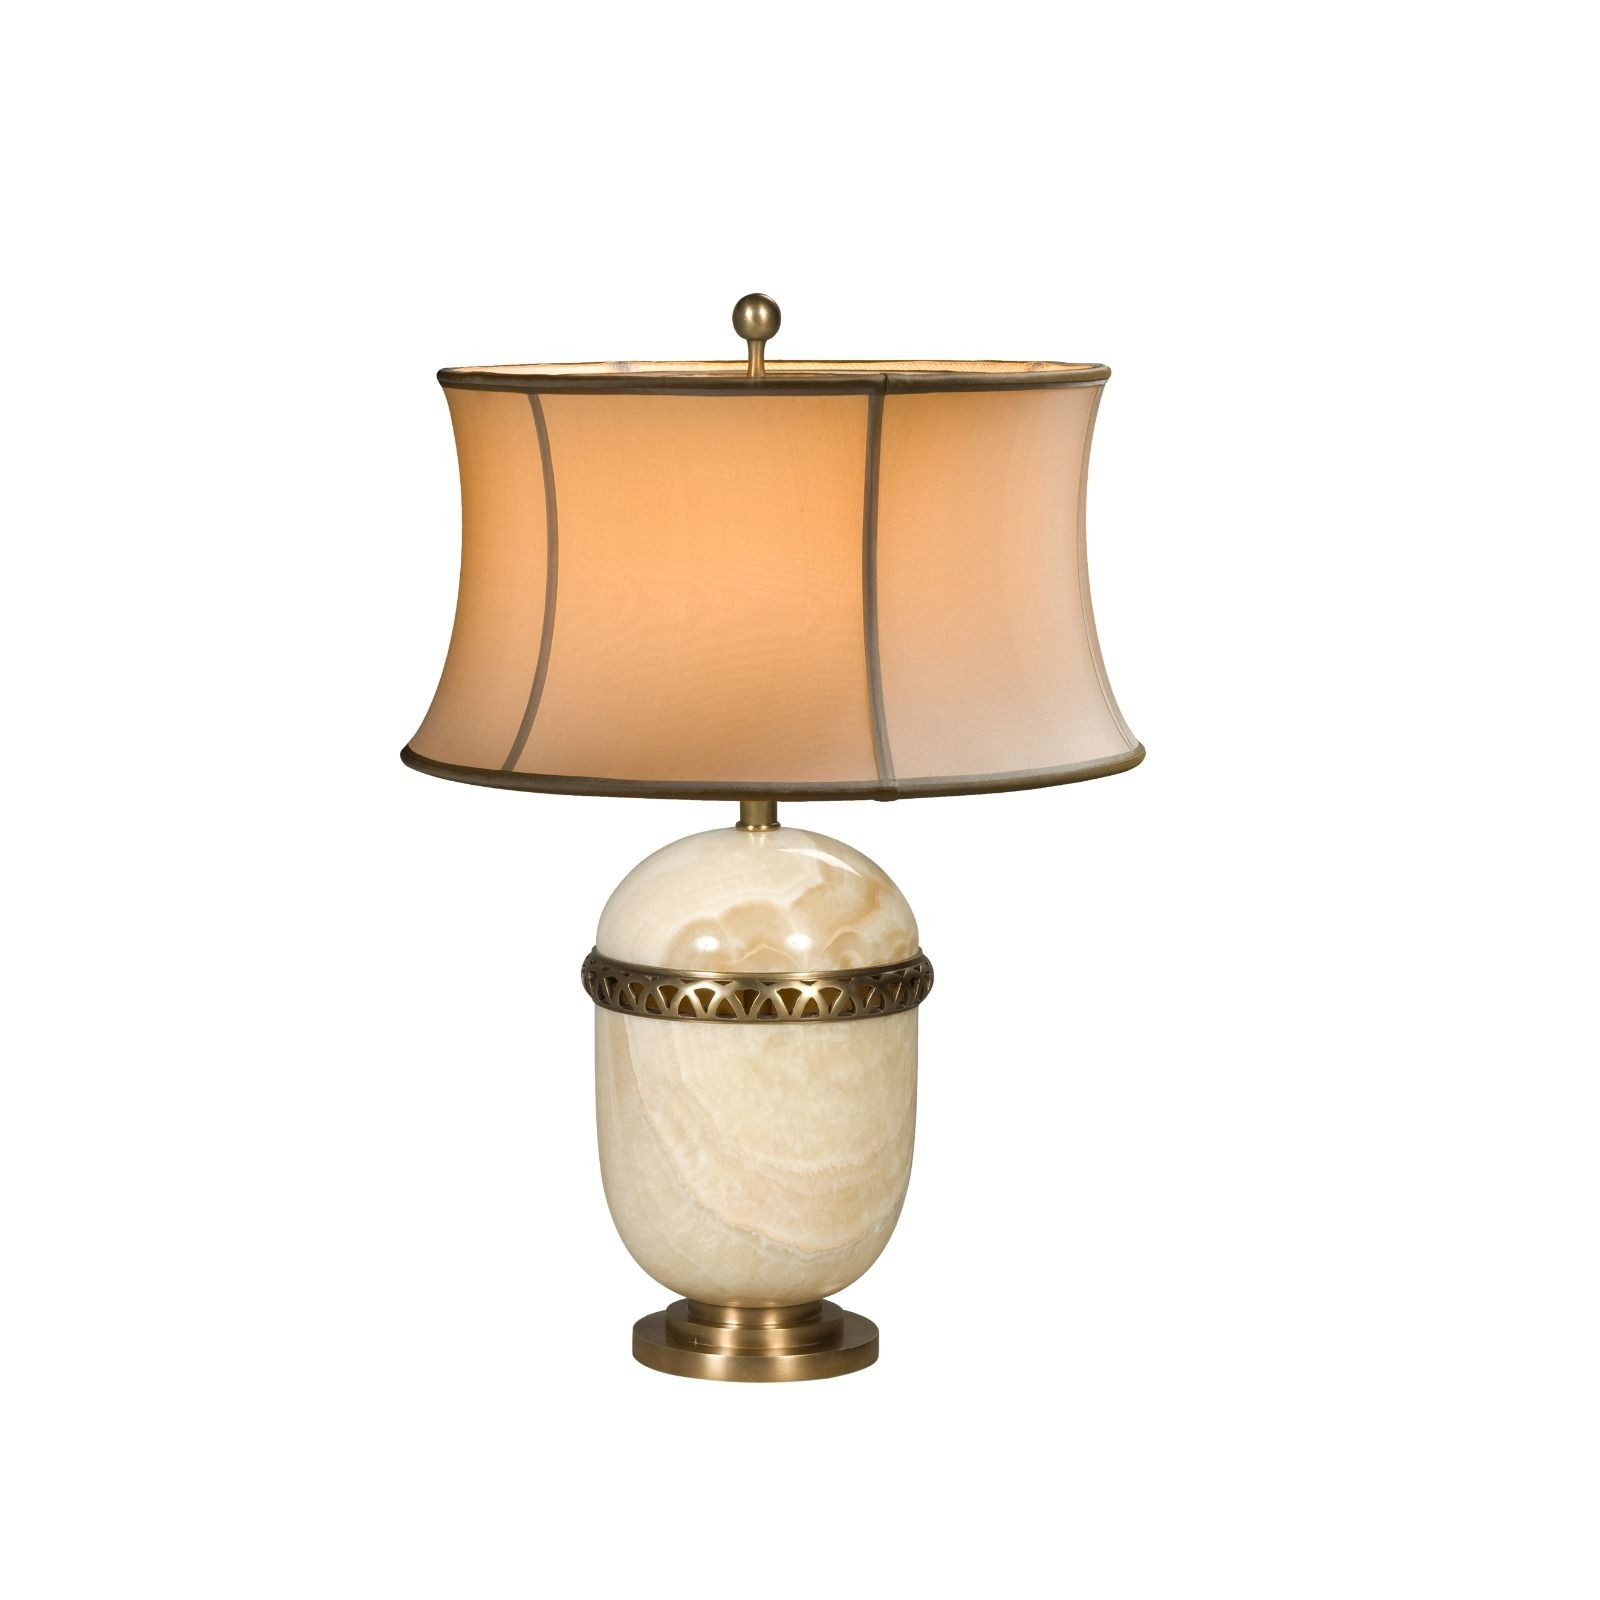 Silk shade Alabaster table lamp